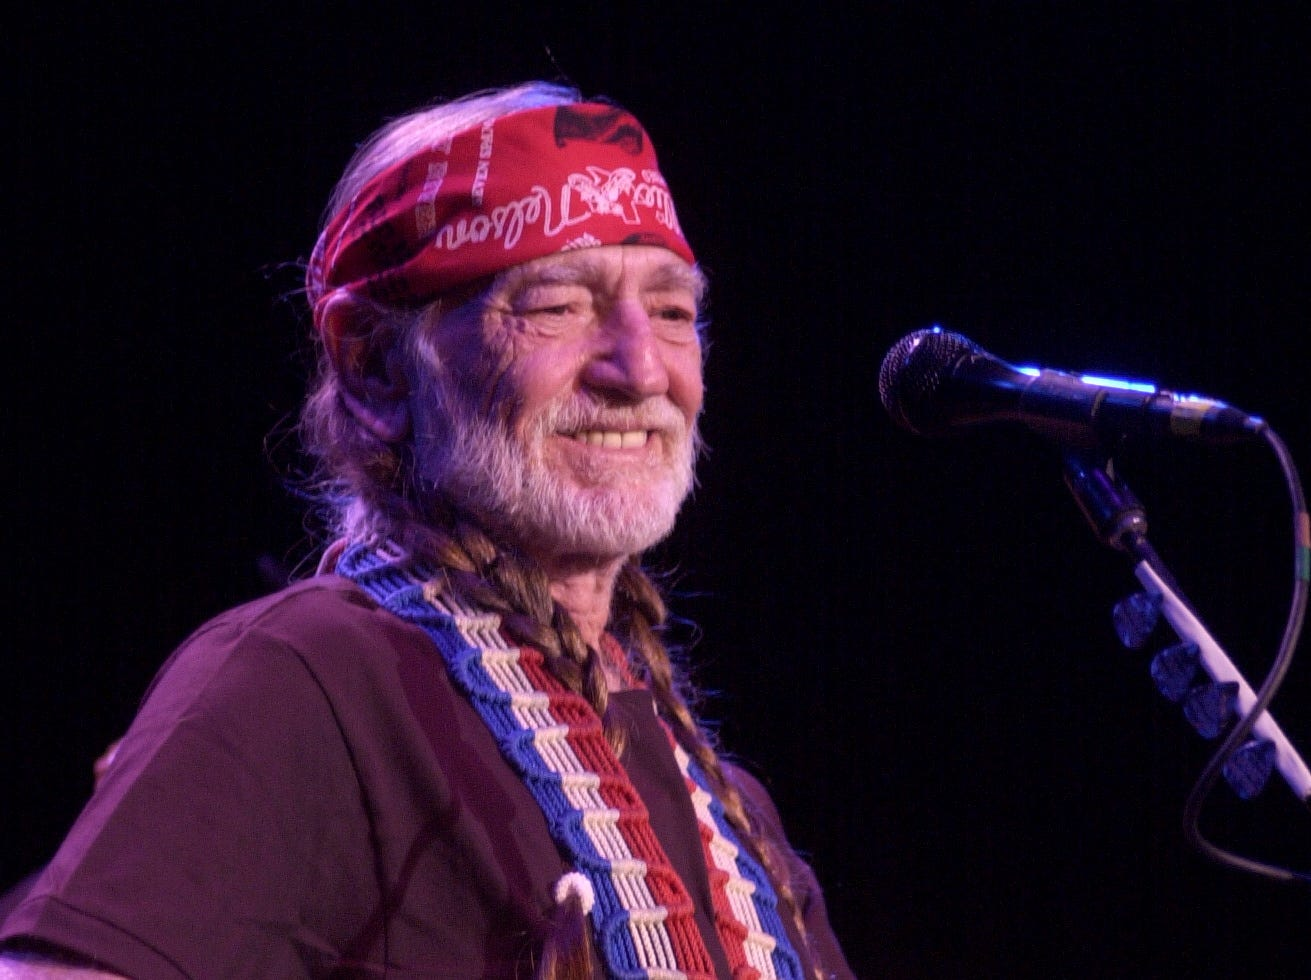 0913wnelson.mc -- Metro --  Willie Nelson performs on stage at the Tennessee Theatre in Knoxville in December 2003.